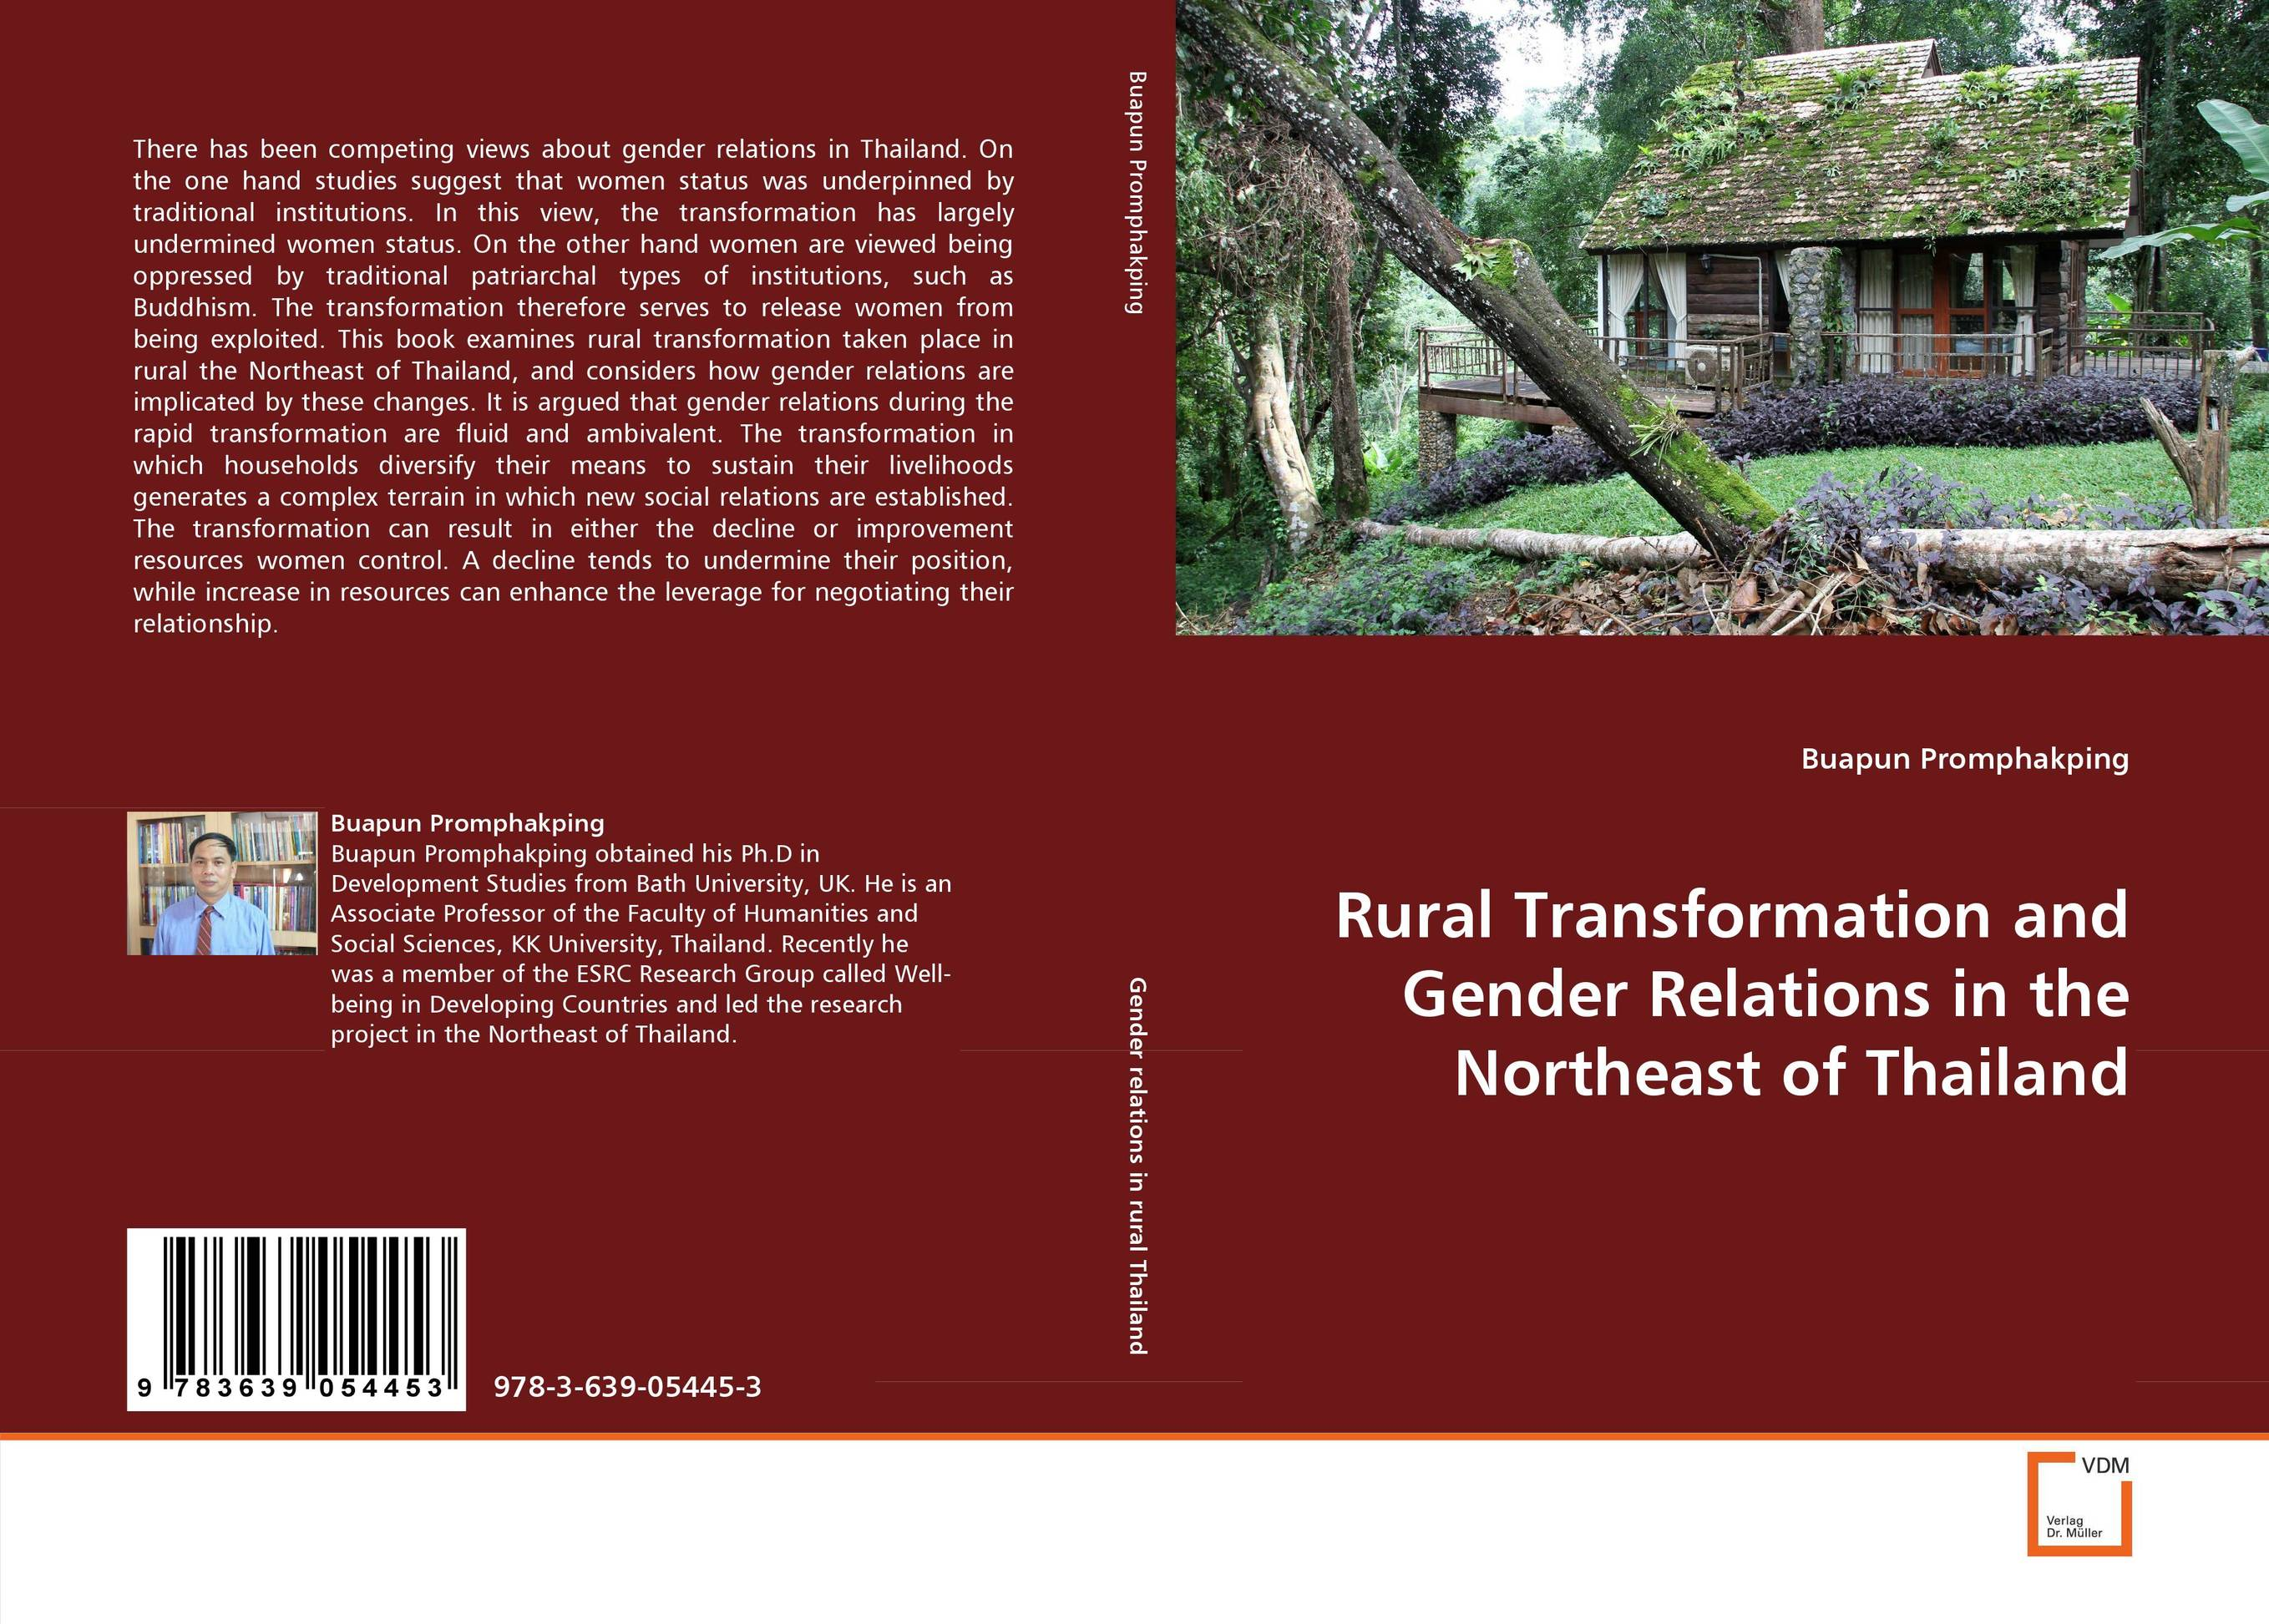 Rural Transformation and Gender Relations in the Northeast of Thailand [show z store] infinite transformation it01 mightron mp36 mp 36 transformation action figure